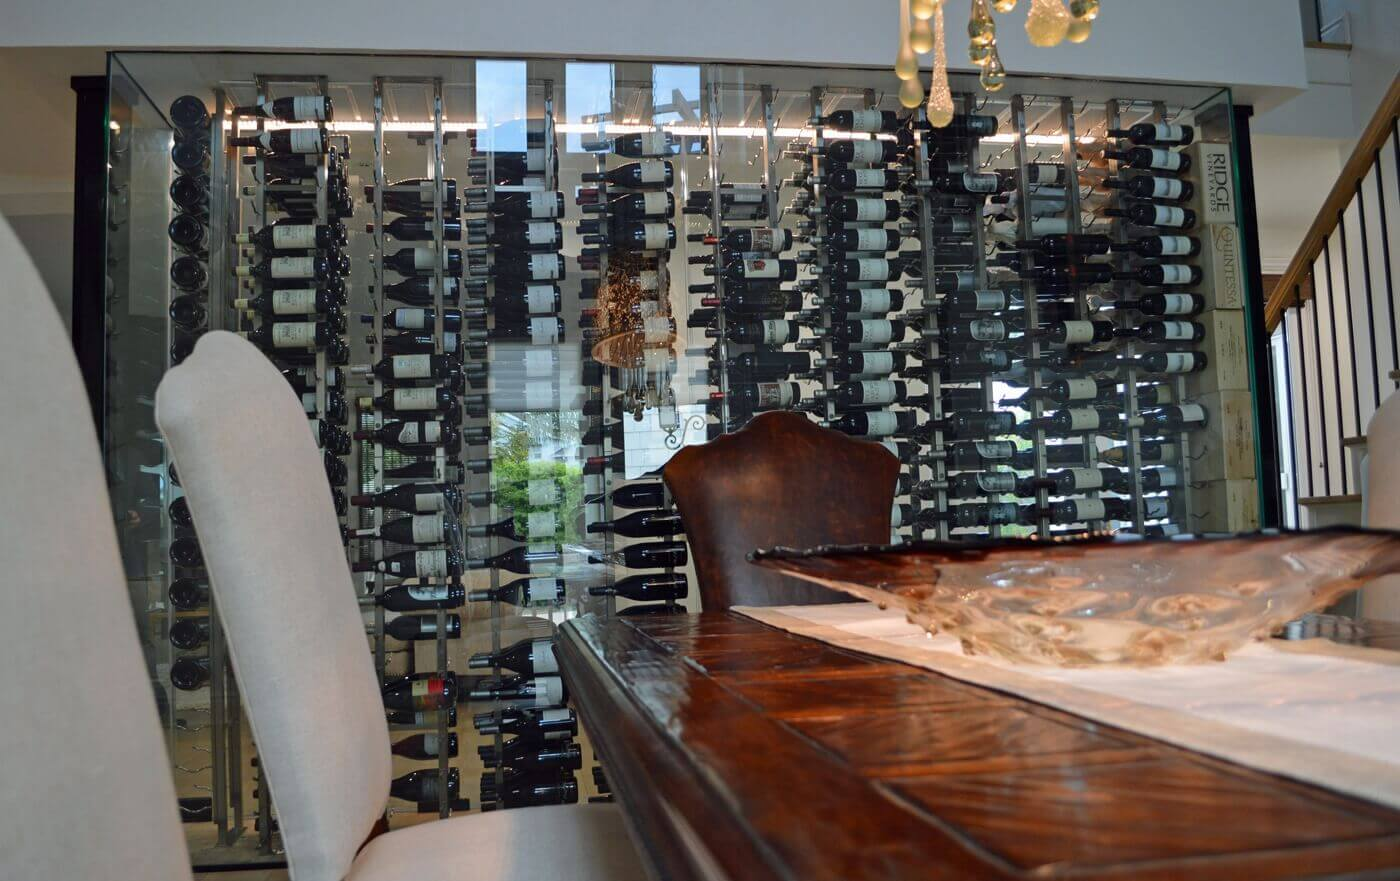 The contemporary design of the glass enclosed wine cellar blends well with the modern interior design of the home.